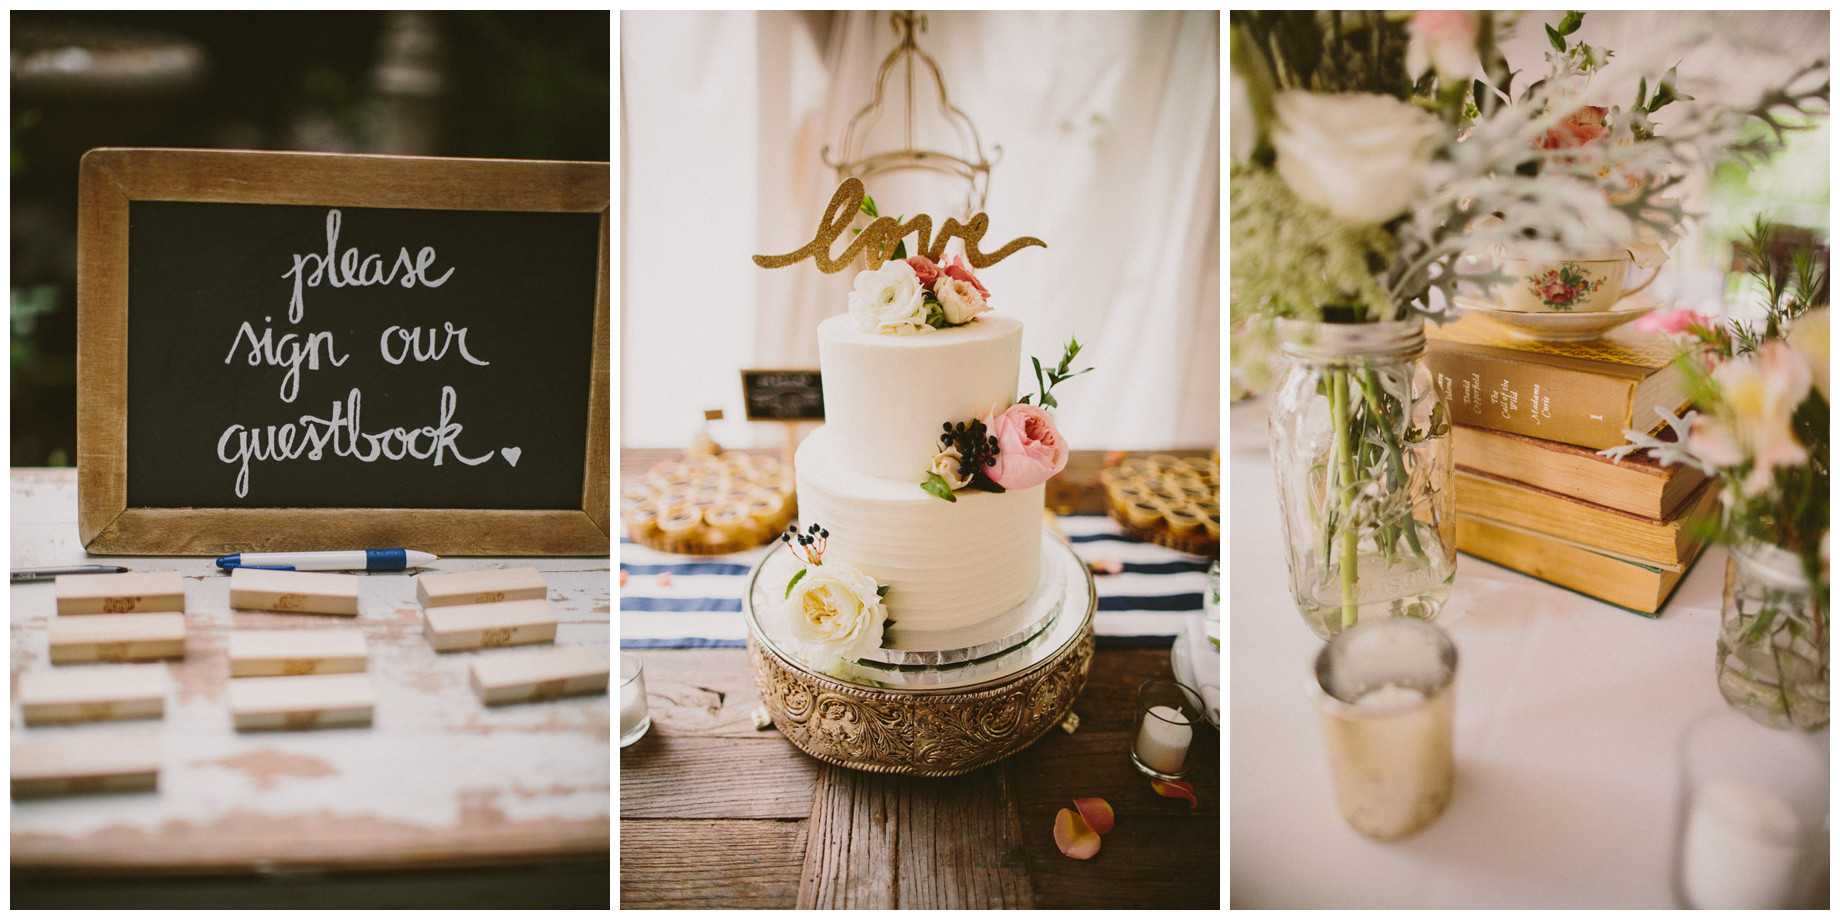 detials of vintage wedding